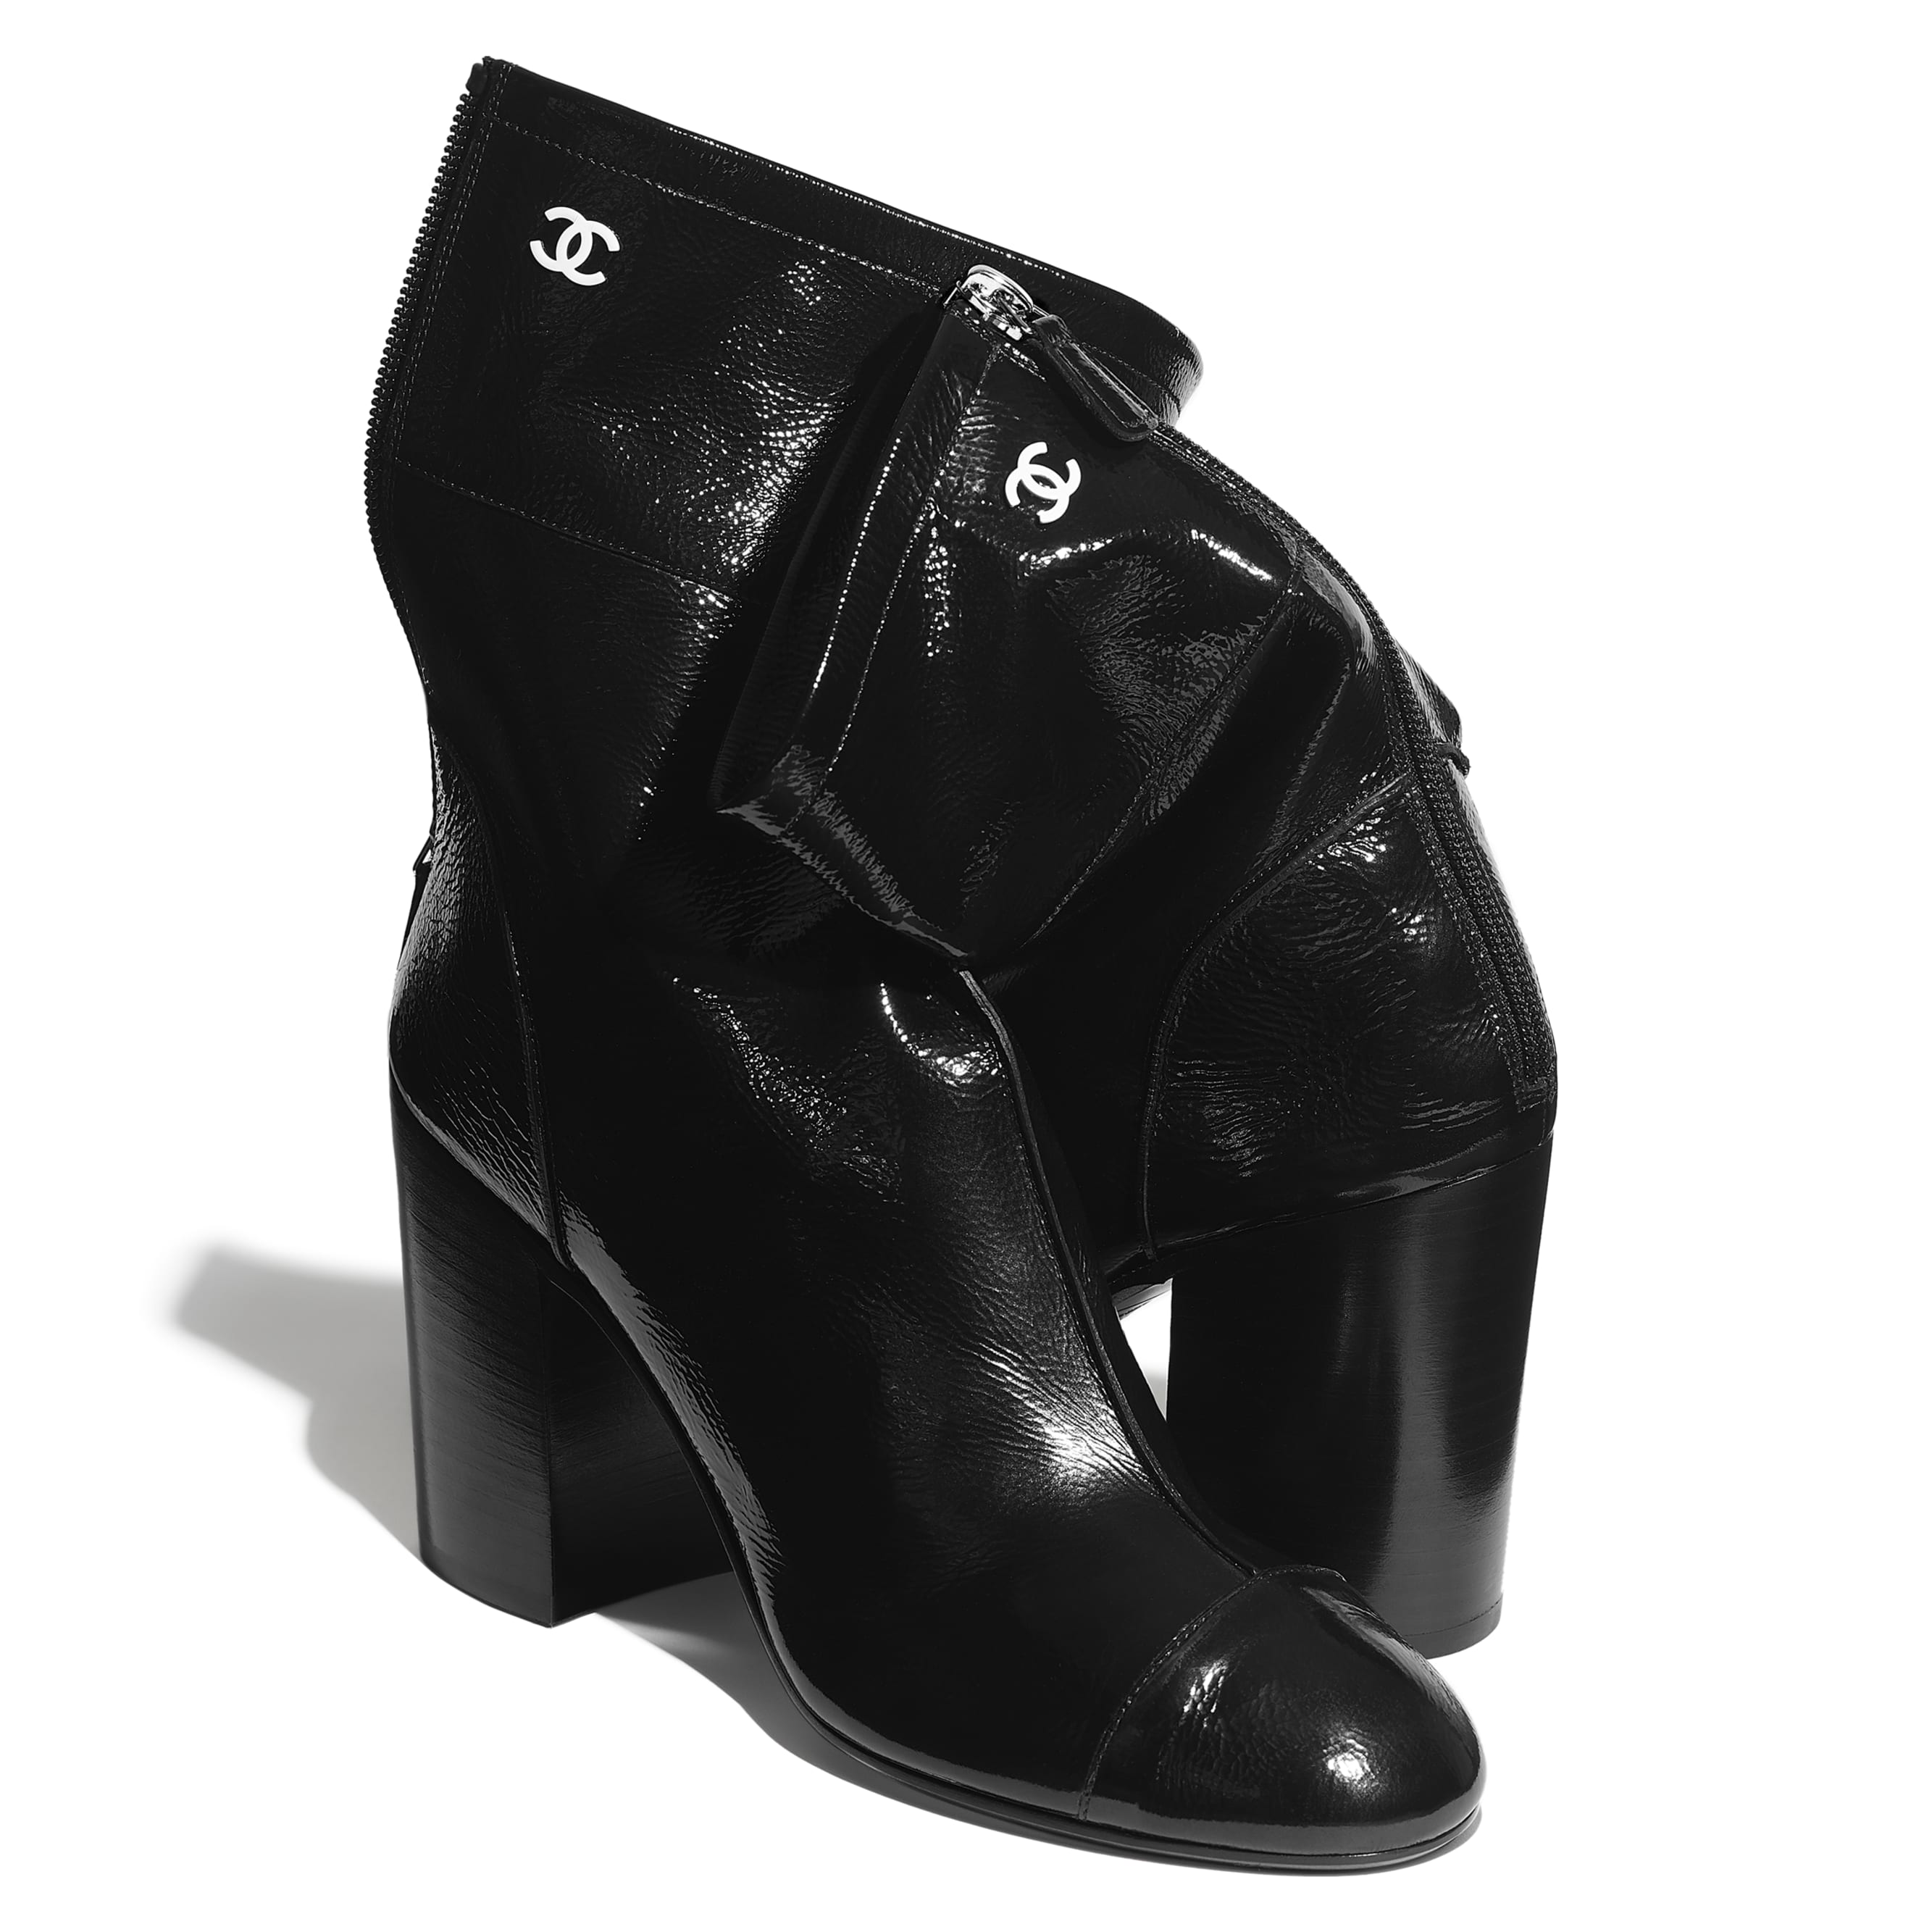 Ankle Boots - Black - Shiny Crumpled Calfskin - CHANEL - Extra view - see standard sized version